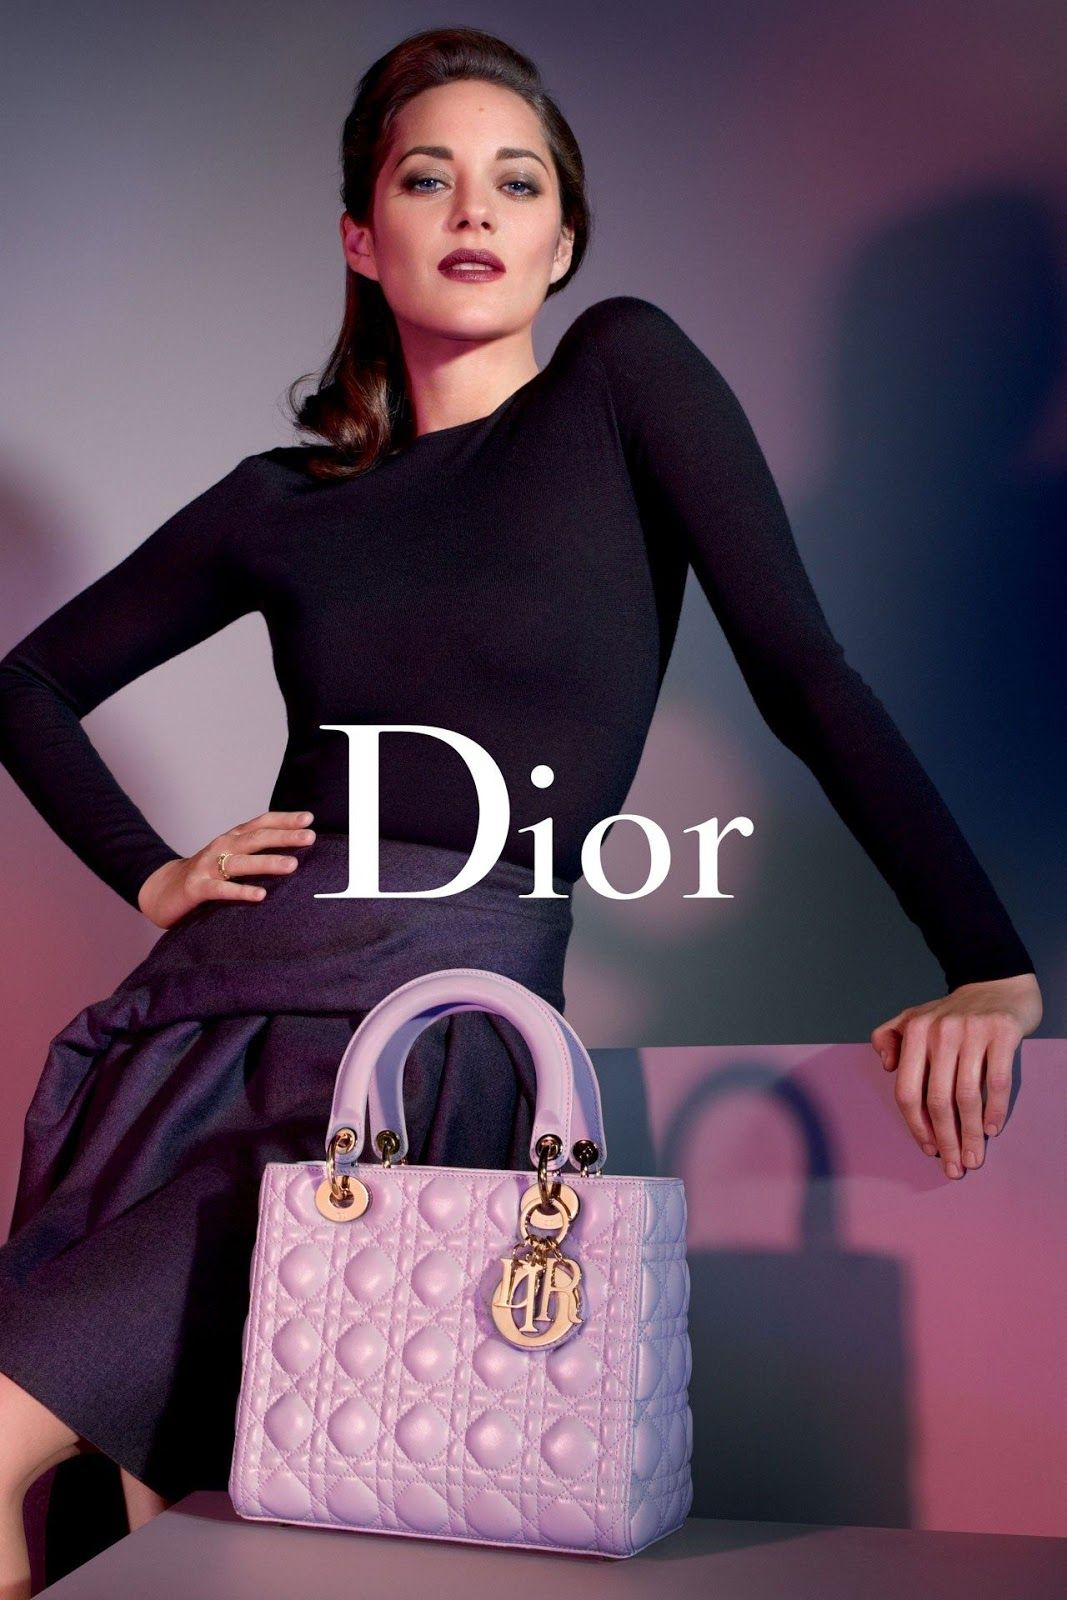 Marion Cotillard in the Newest Lady Dior 2019 Campaign forecasting